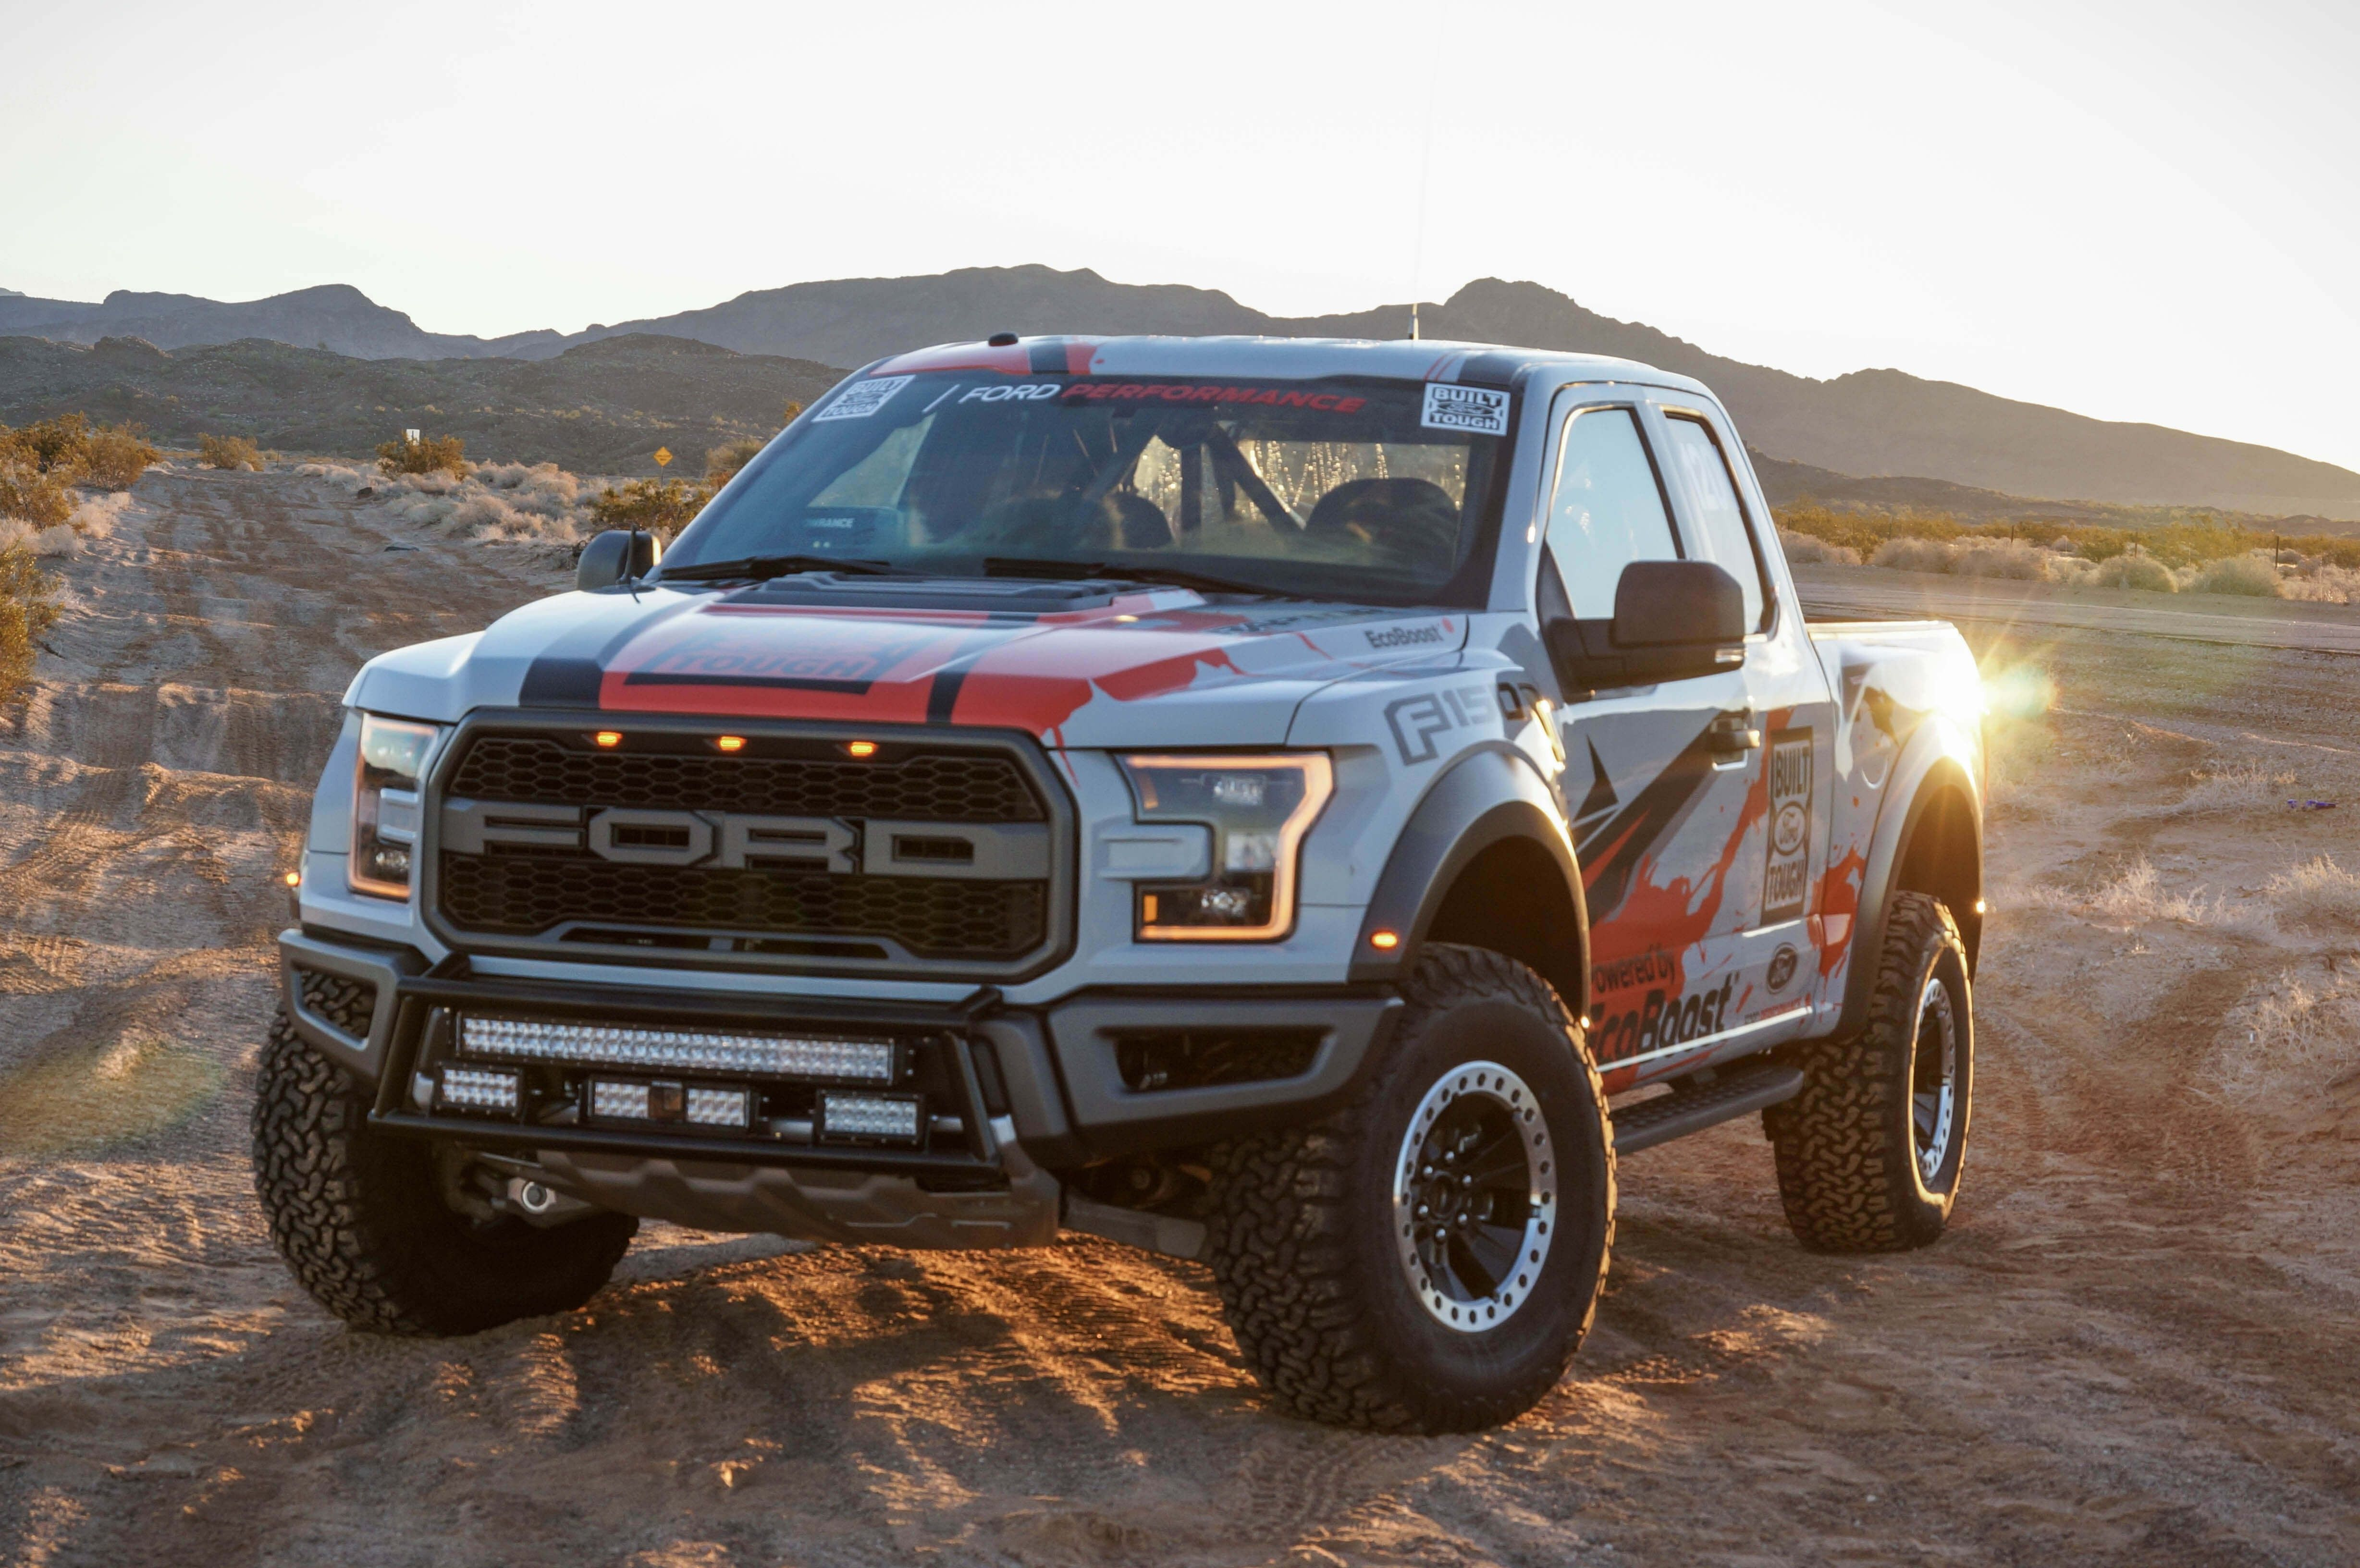 Beautiful 2017 ford Raptor iPhone Wallpaper in 2020 Ford